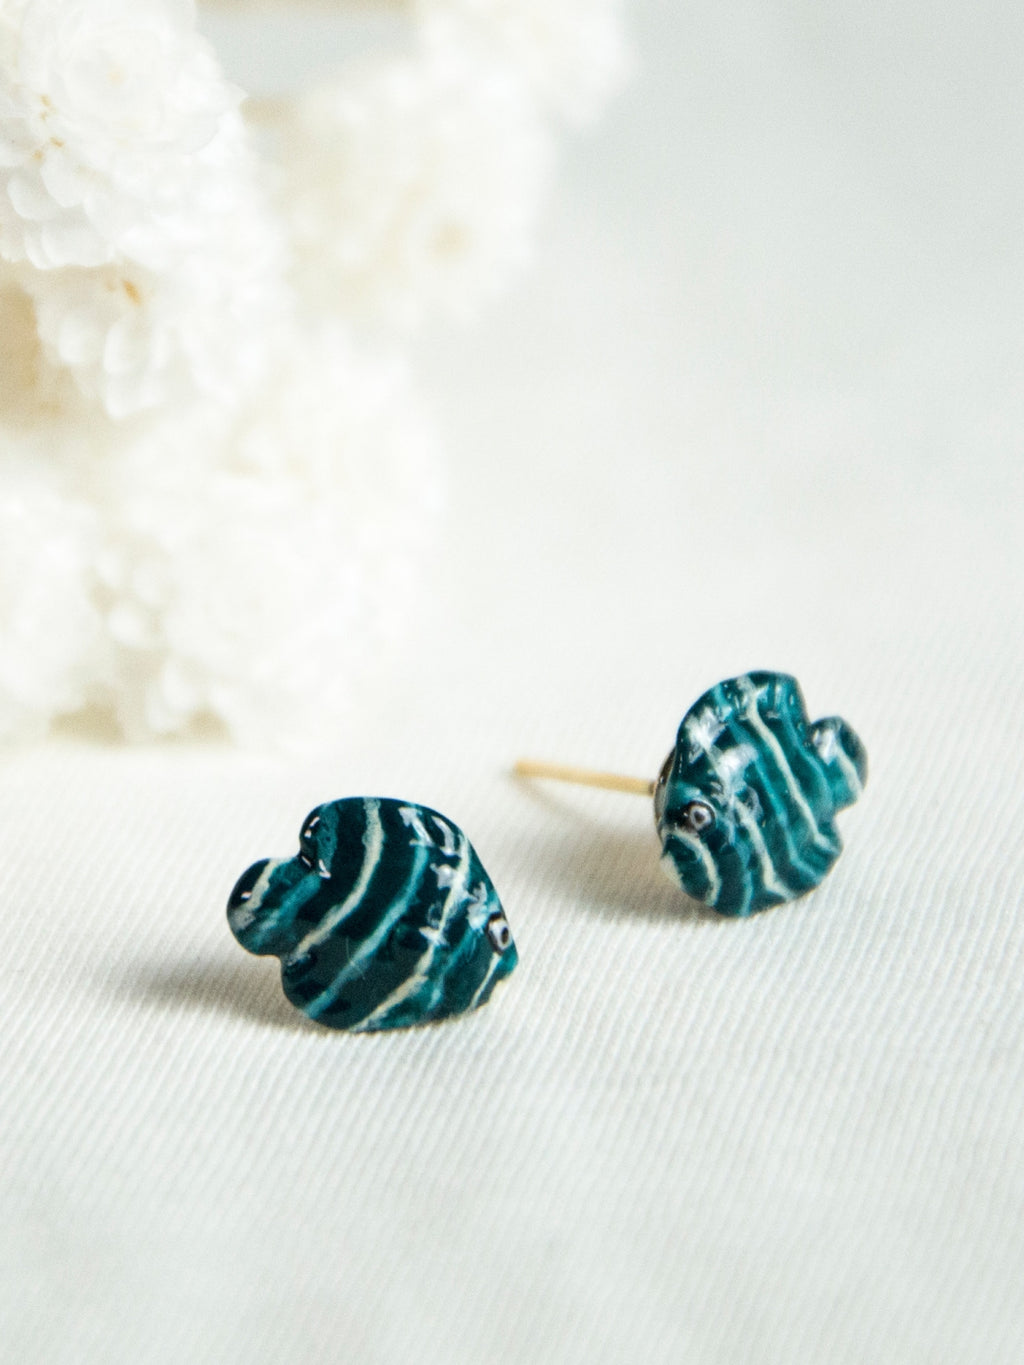 Blue and White Fish stud earrings